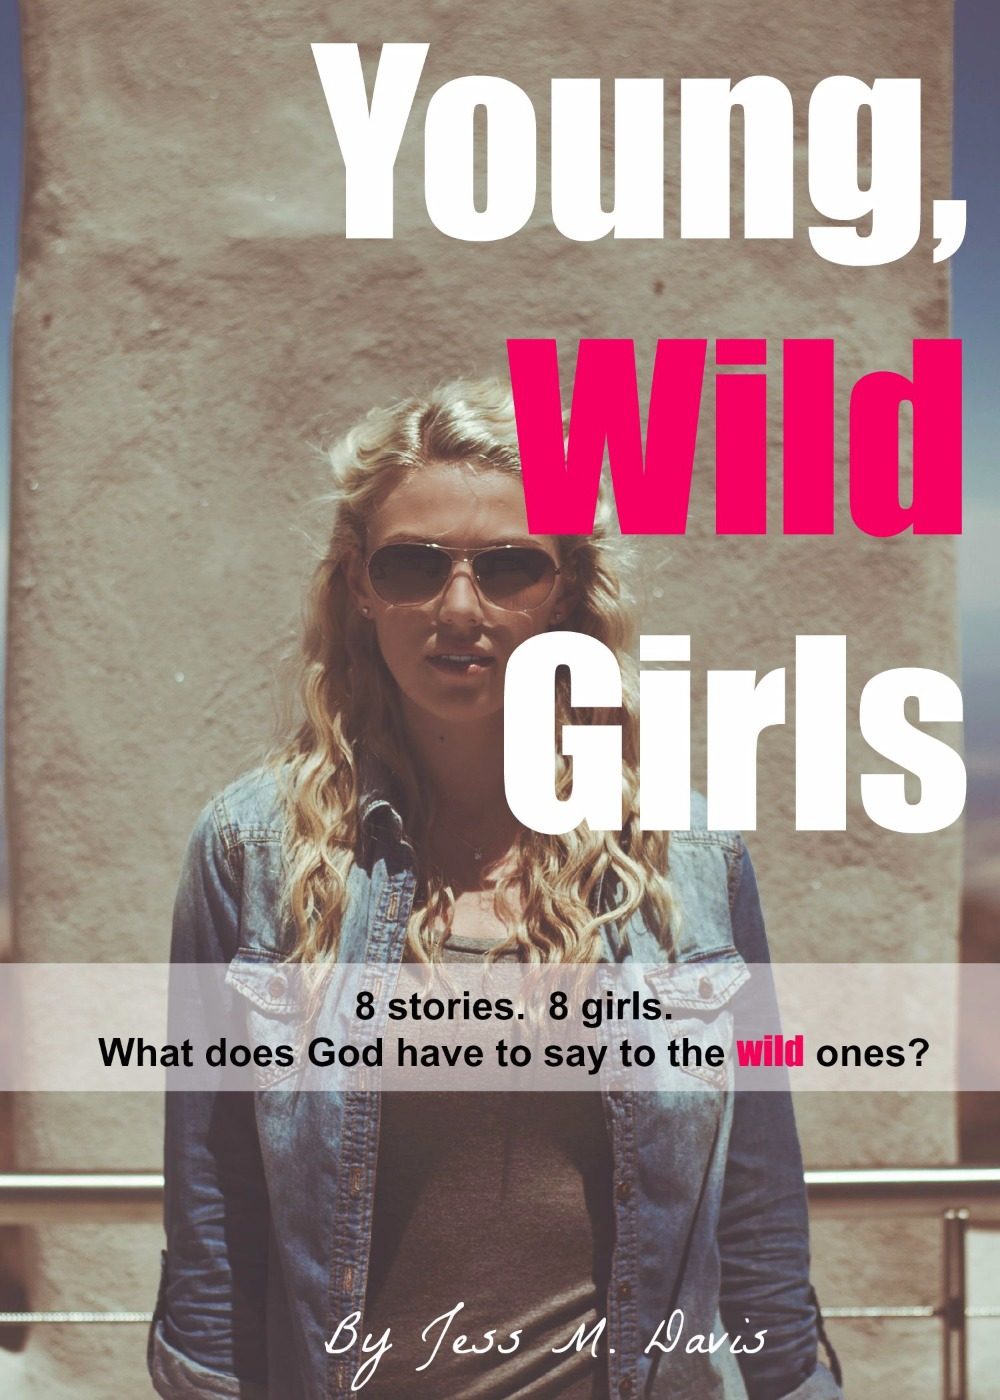 Young, Wild Girls